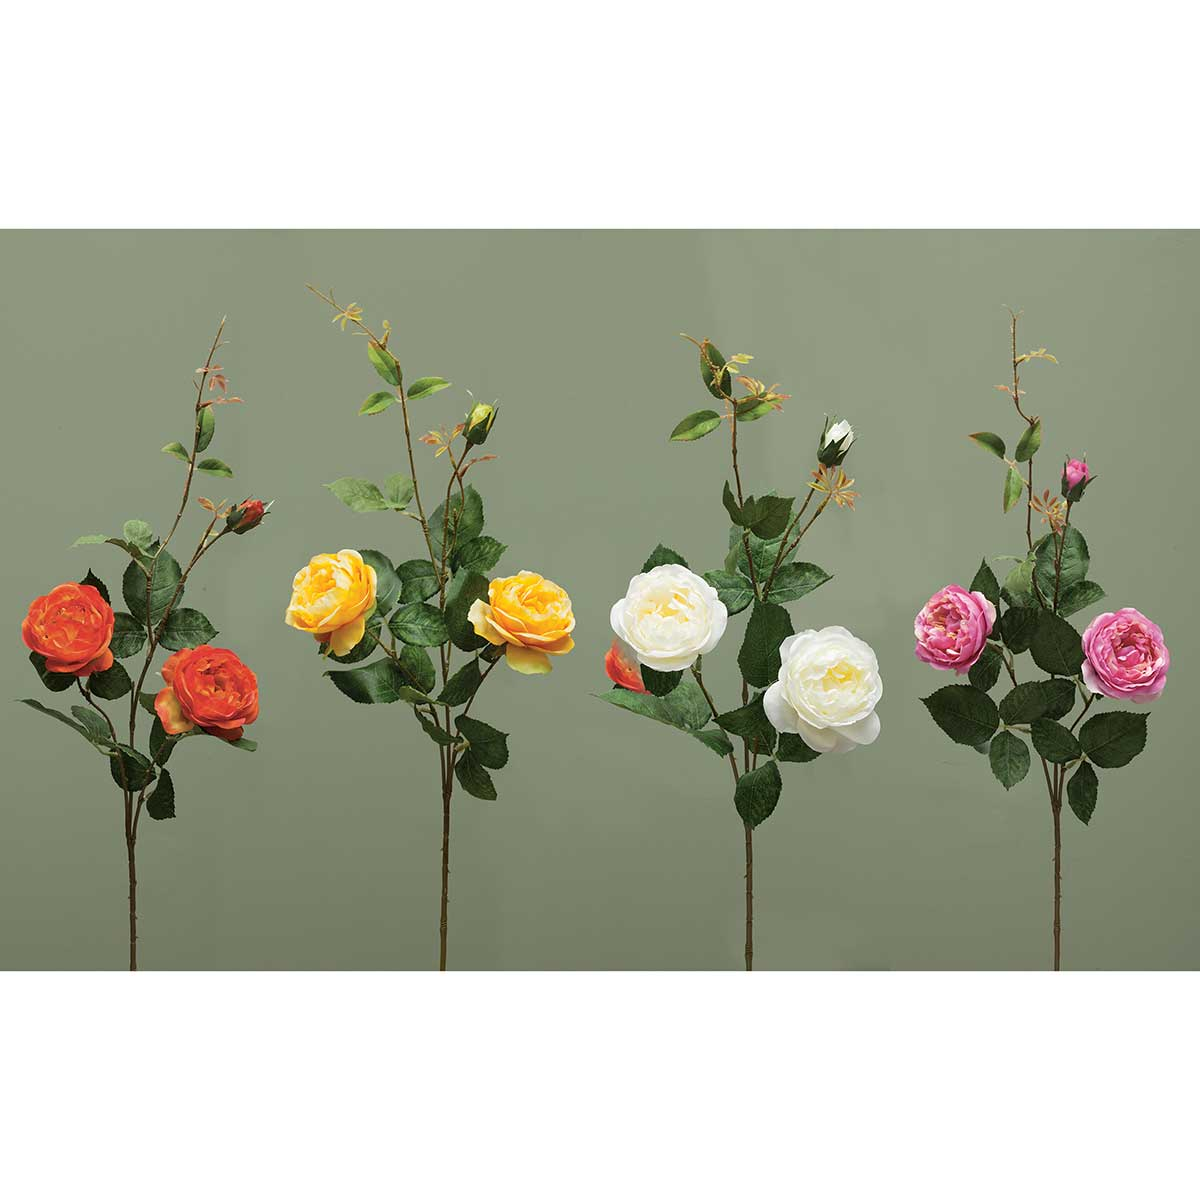 PEONY ROSE SPRAY ASSORTMENT PACK 12 UNITS